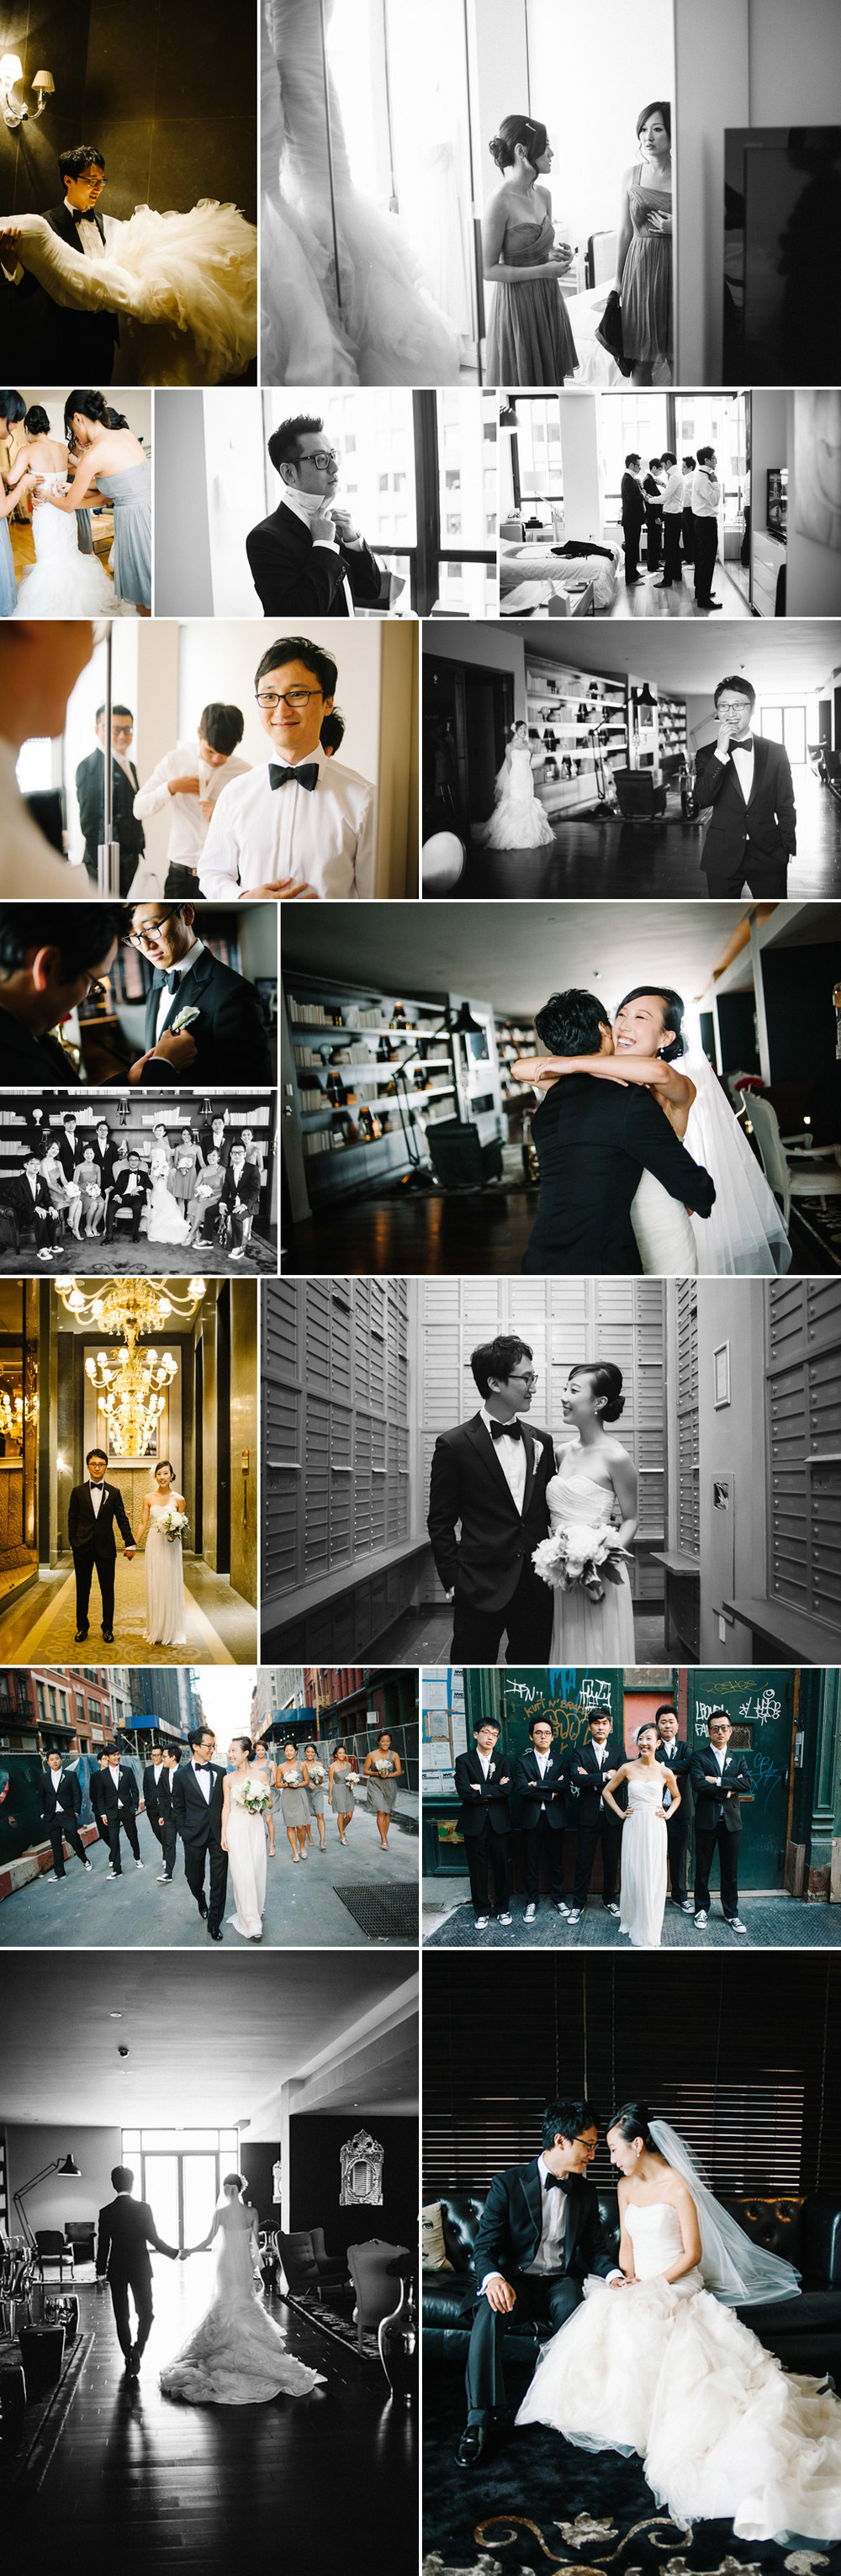 Collage-TriBeCa-NYC-Jungsik-Wedding-01.jpg